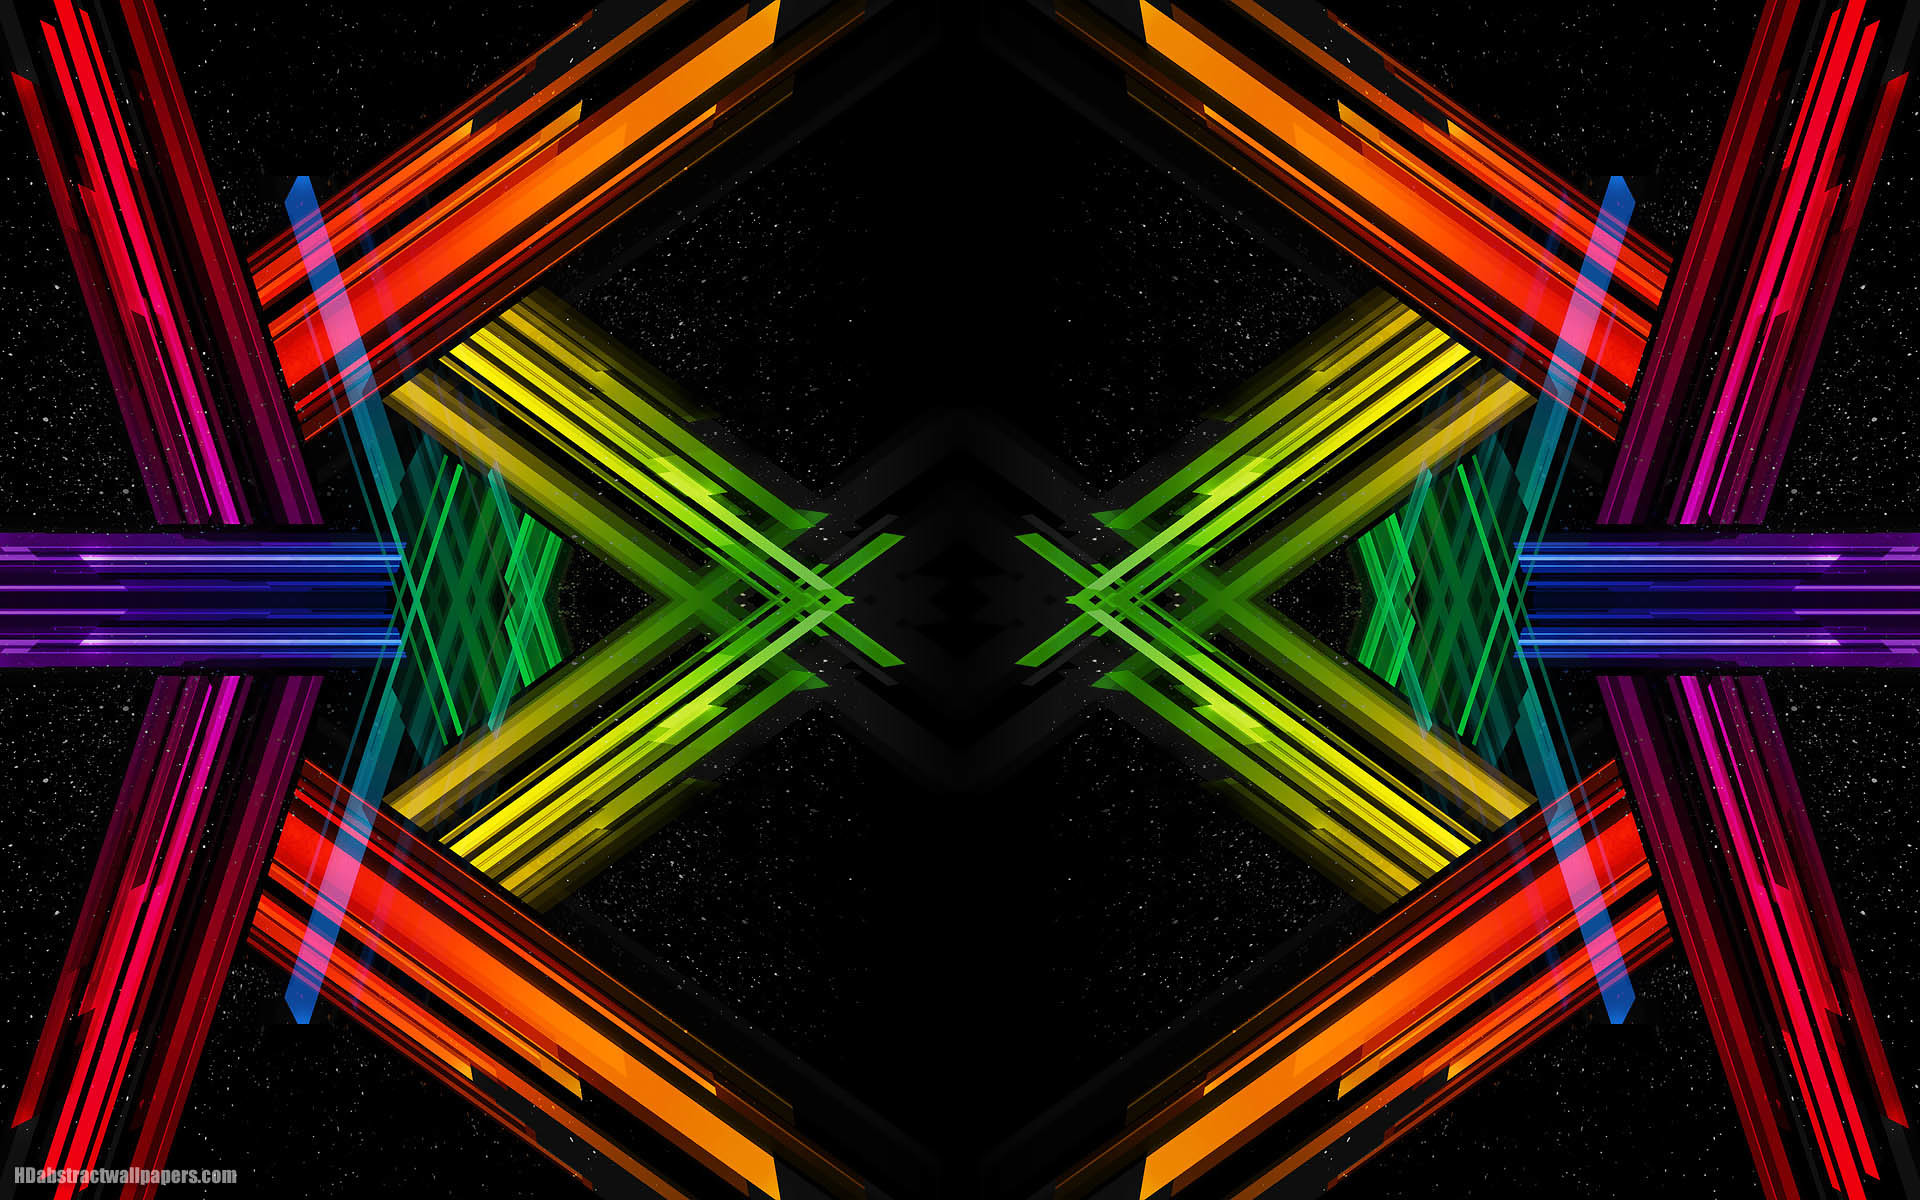 Black abstract wallpaper with colorful lines